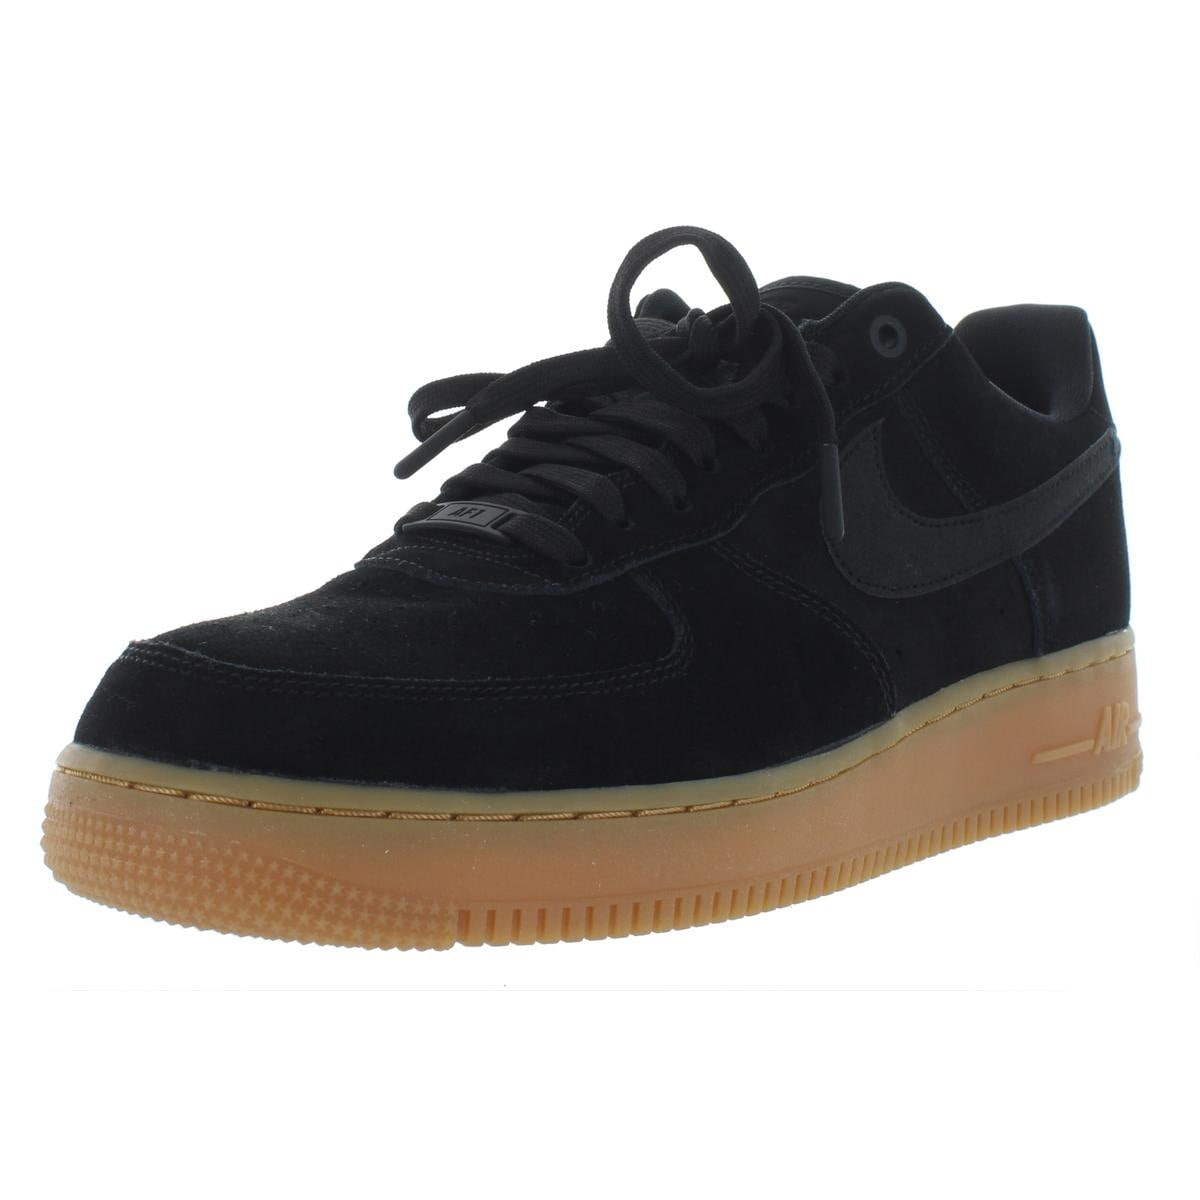 quality design 67edc b46ff Shop Nike Mens Air Force 1 07 Athletic Shoes Suede Low Top - Free Shipping  Today - Overstock - 27798549